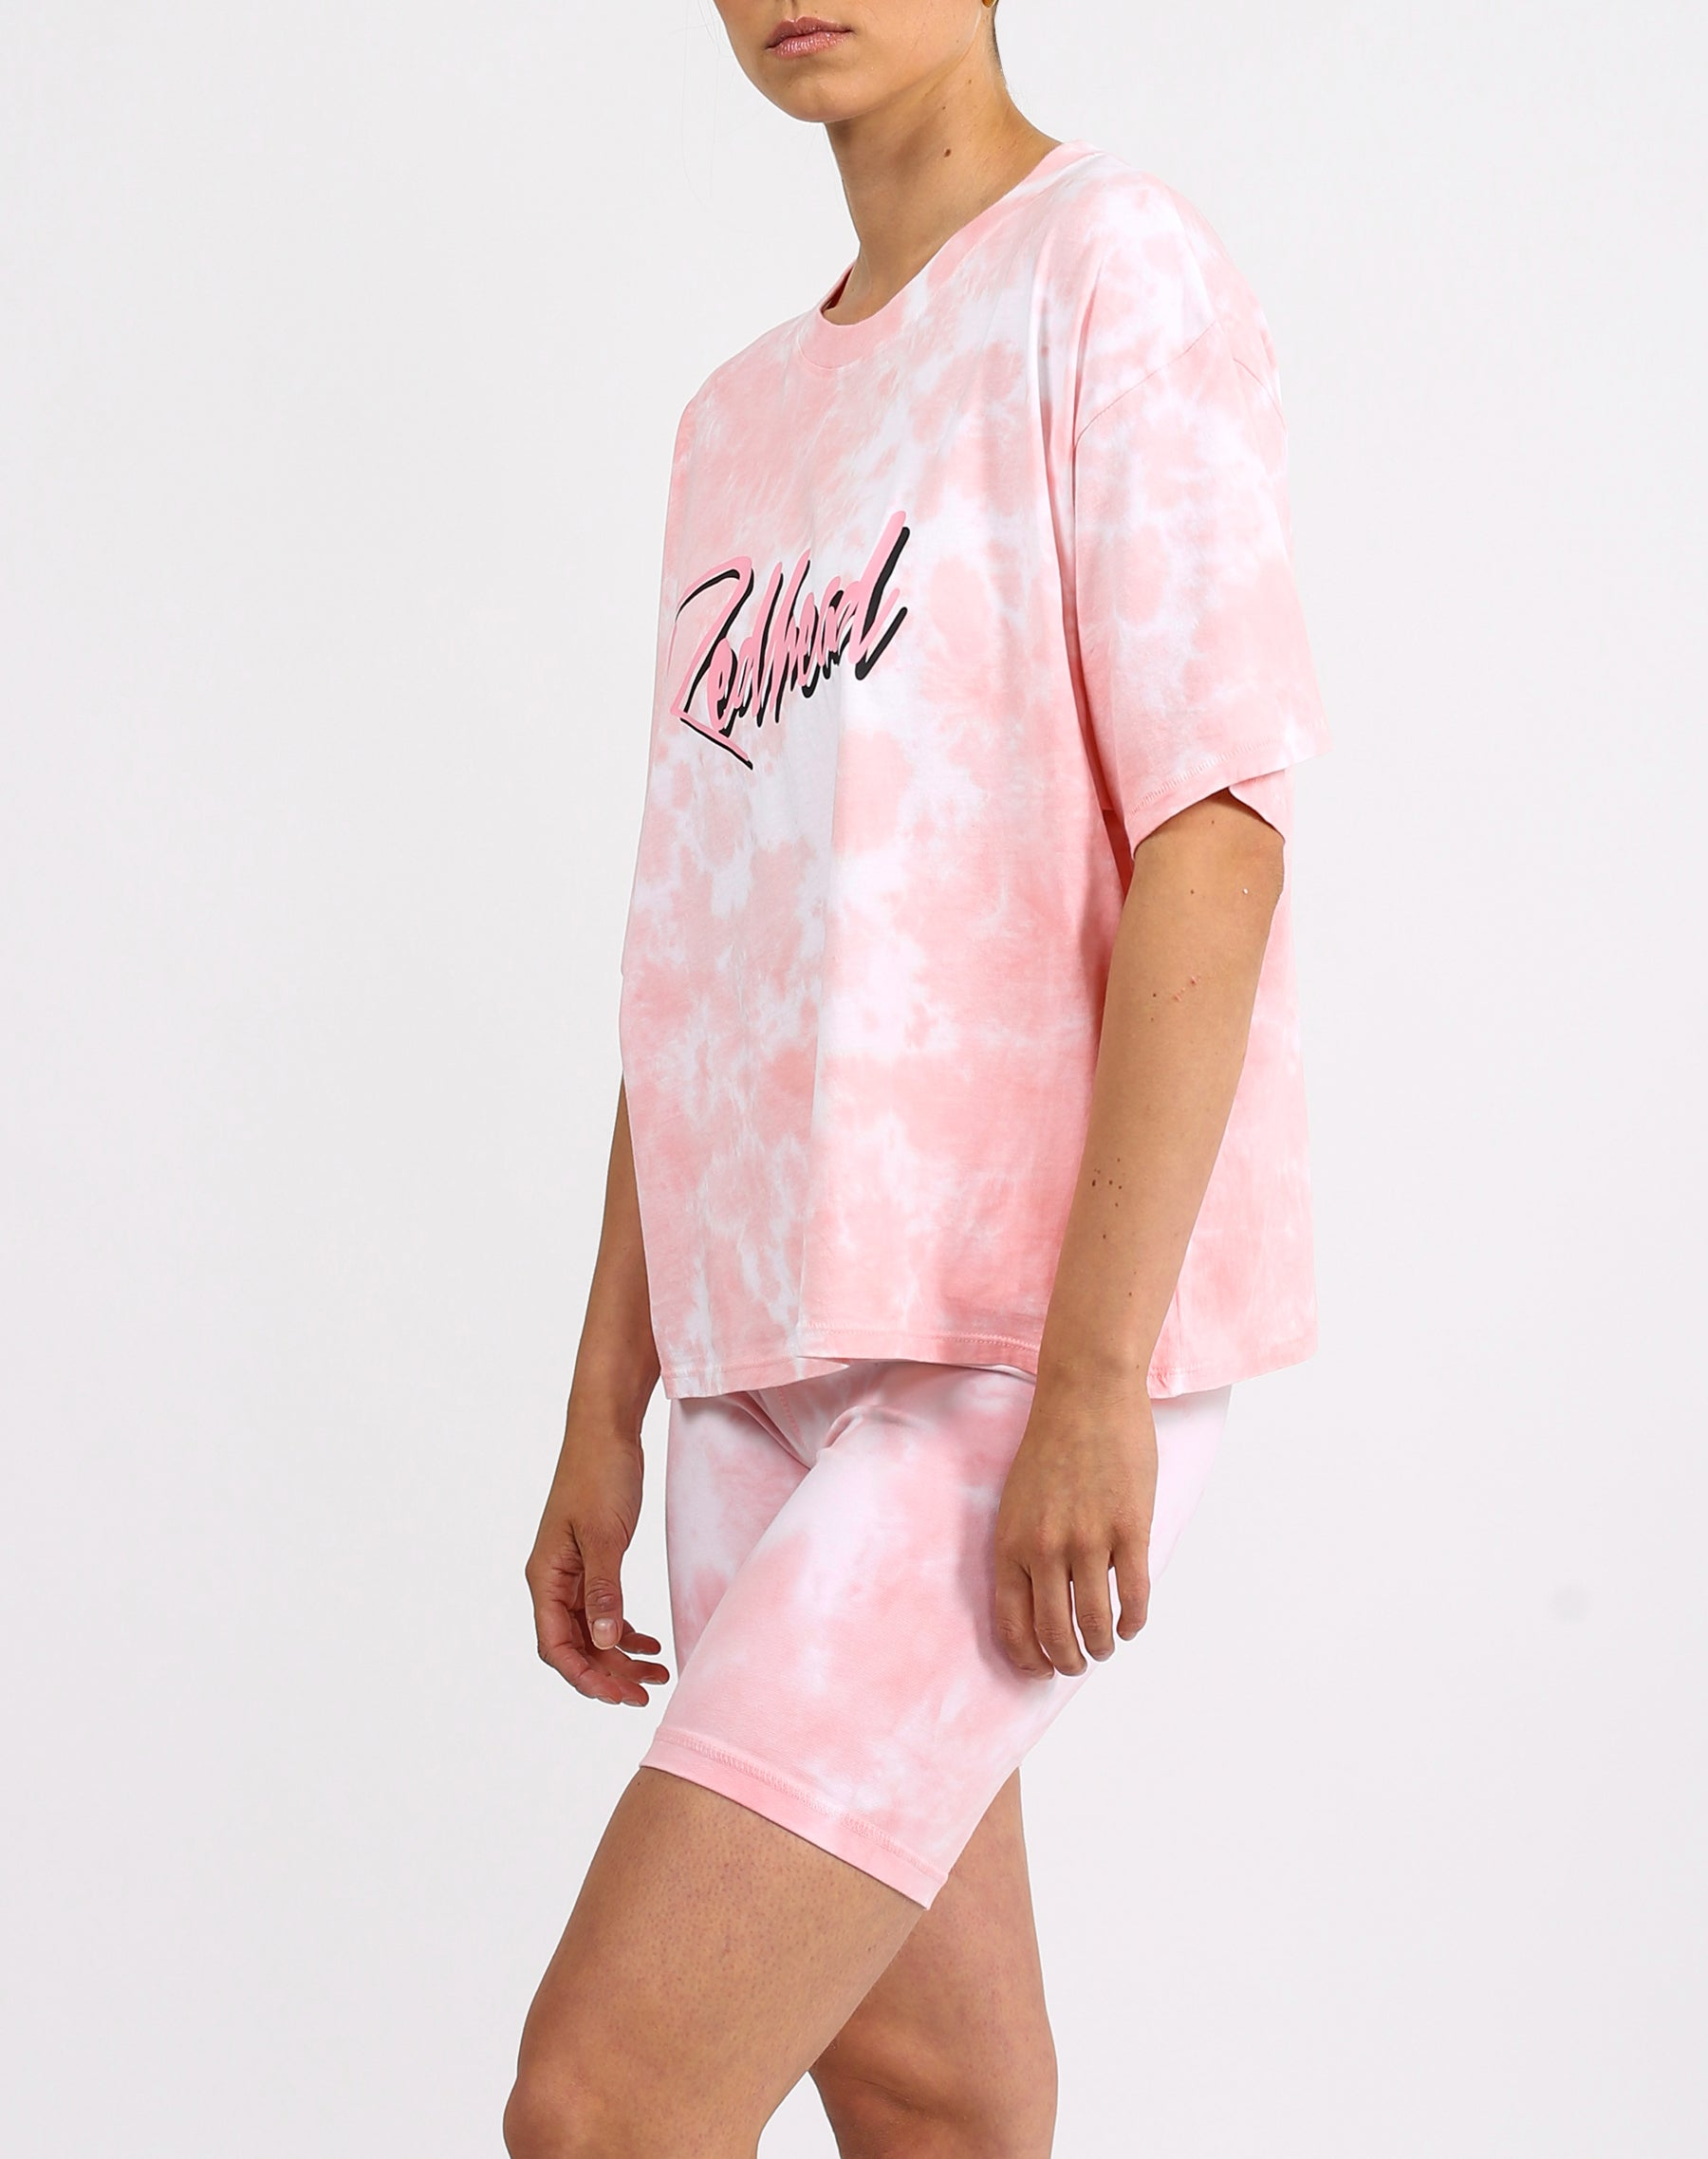 This is a photo of a model wearing the redhead boxy retro tee in pink marble by Brunette the Label x Juicy Couture.